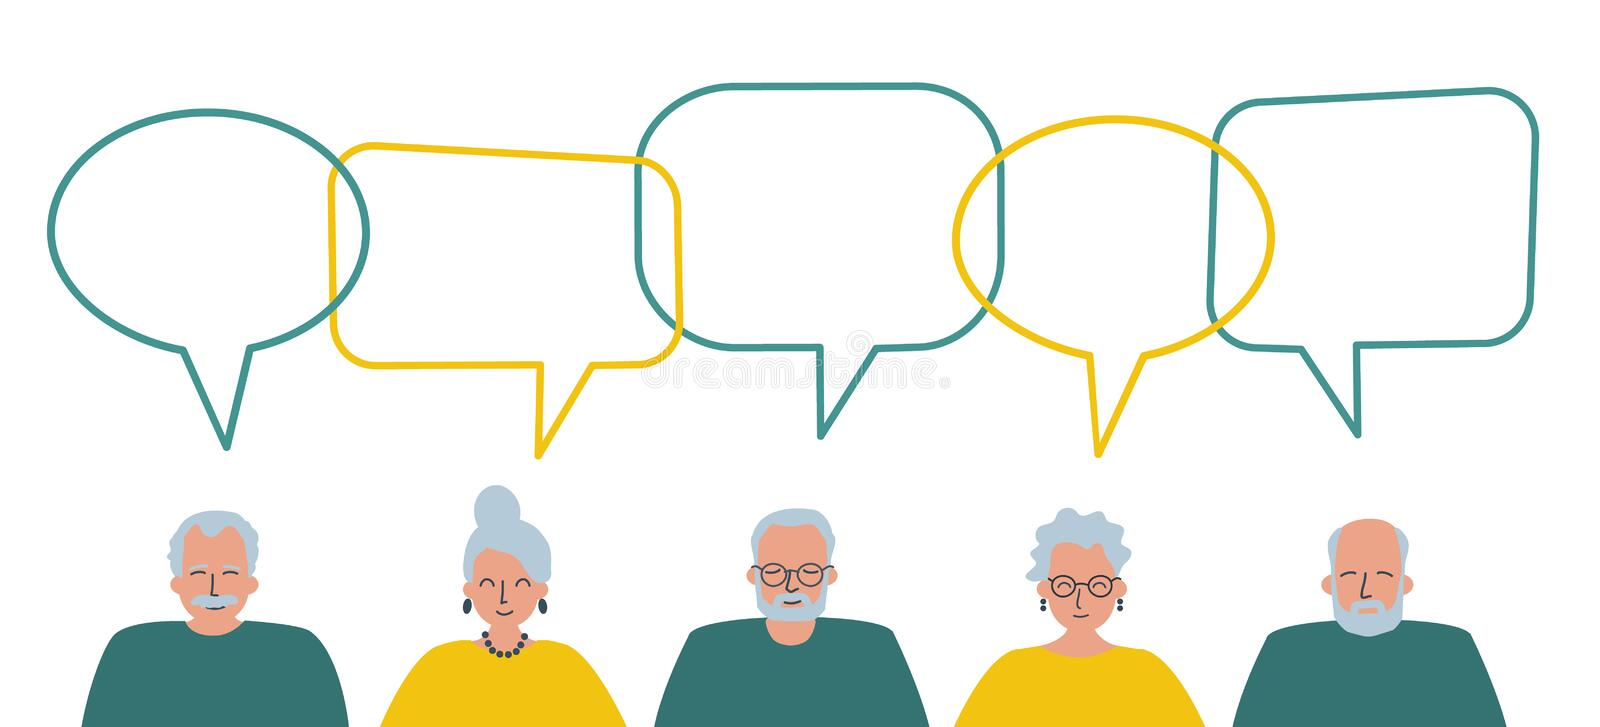 Community of older people. Communication of elderly men and elderly women. People icons with speech bubbles. Vector illustration royalty free illustration